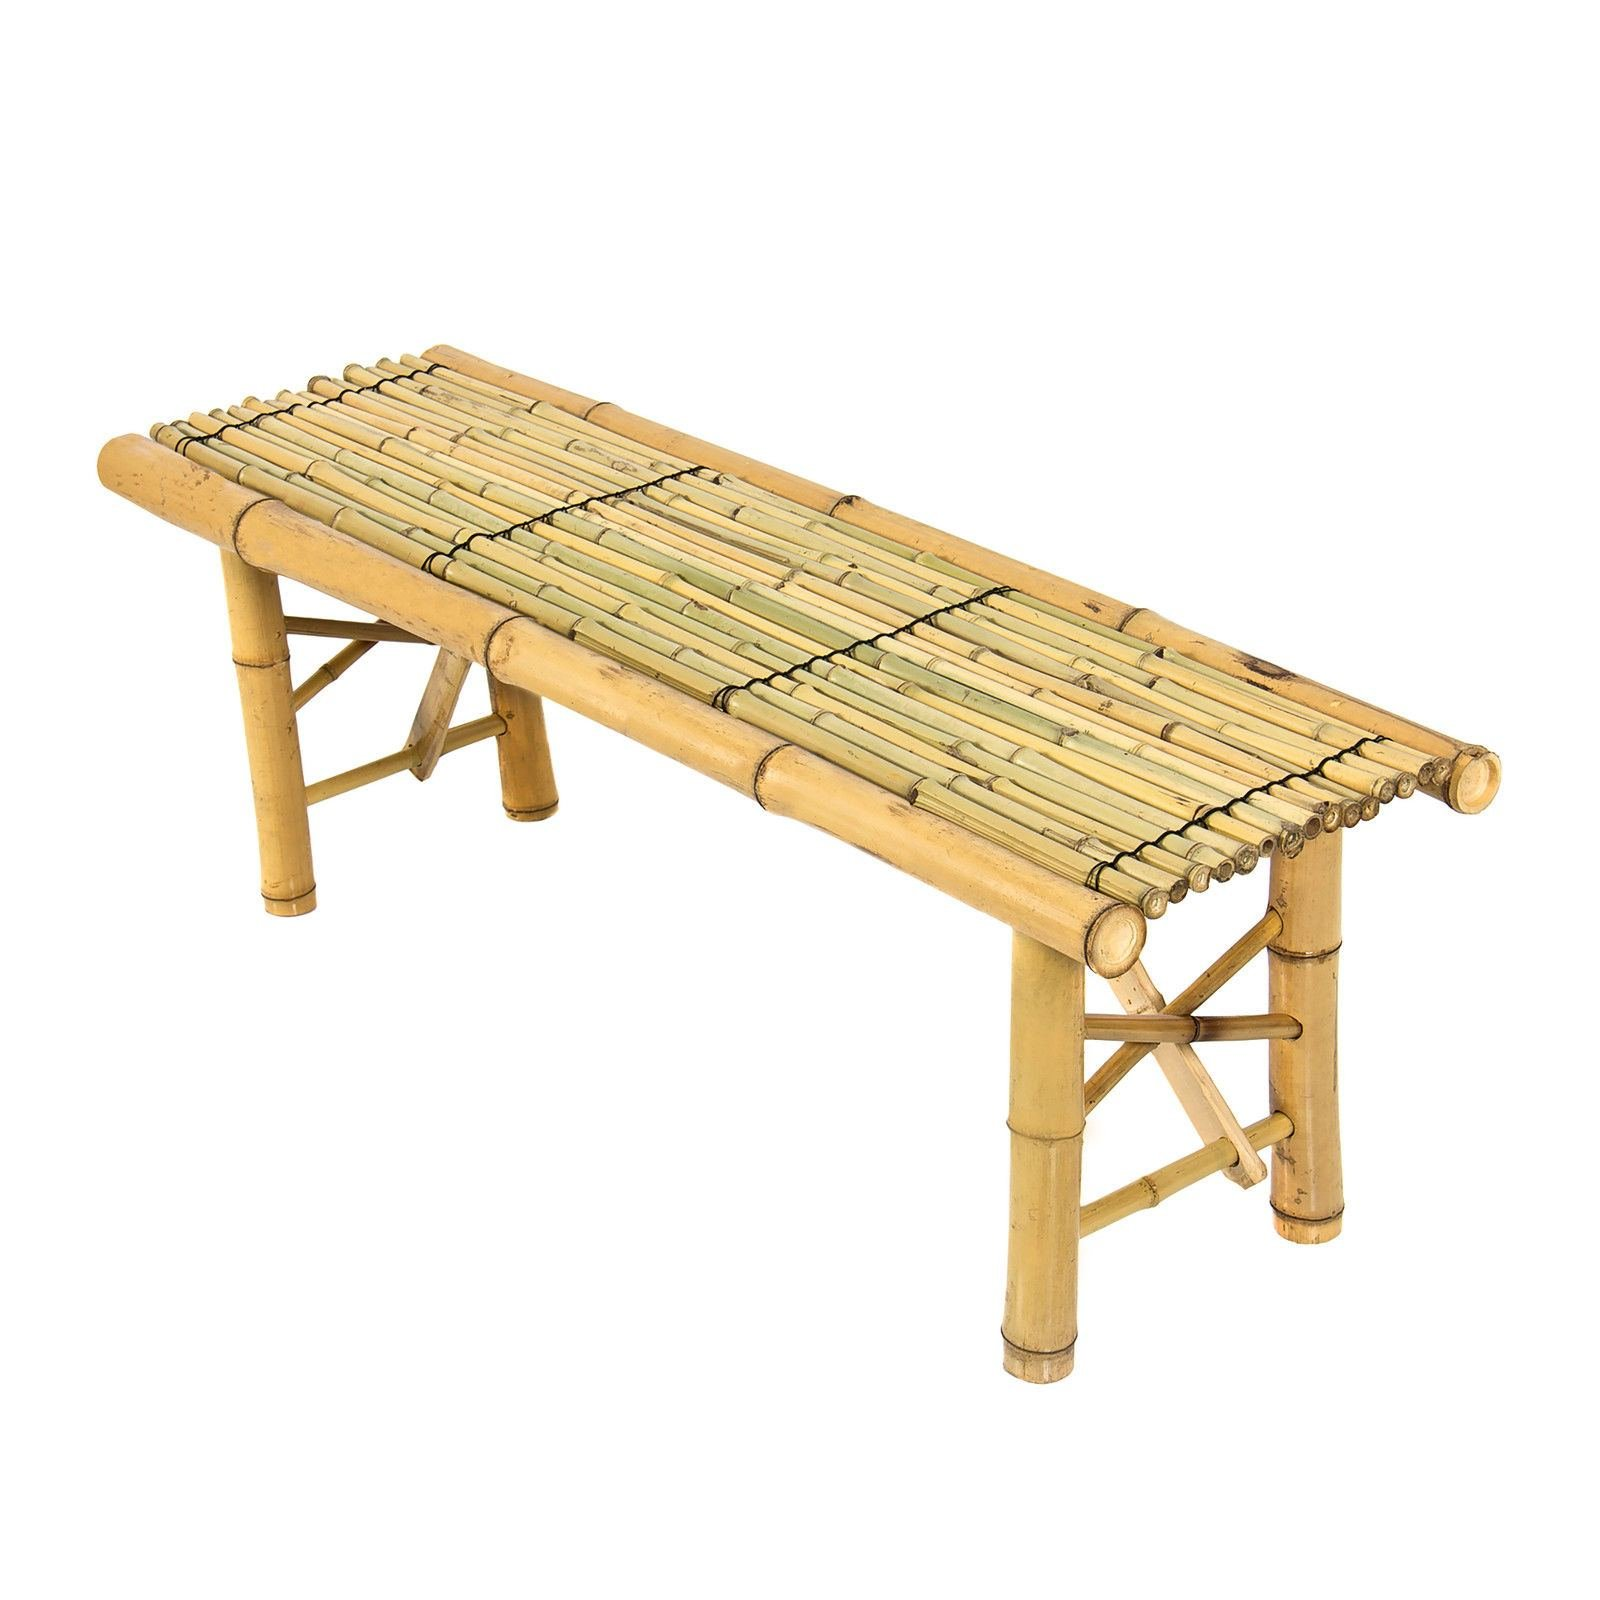 Super Buy Prosource Tiki Bamboo Bench Tropical Coffee Table For Theyellowbook Wood Chair Design Ideas Theyellowbookinfo